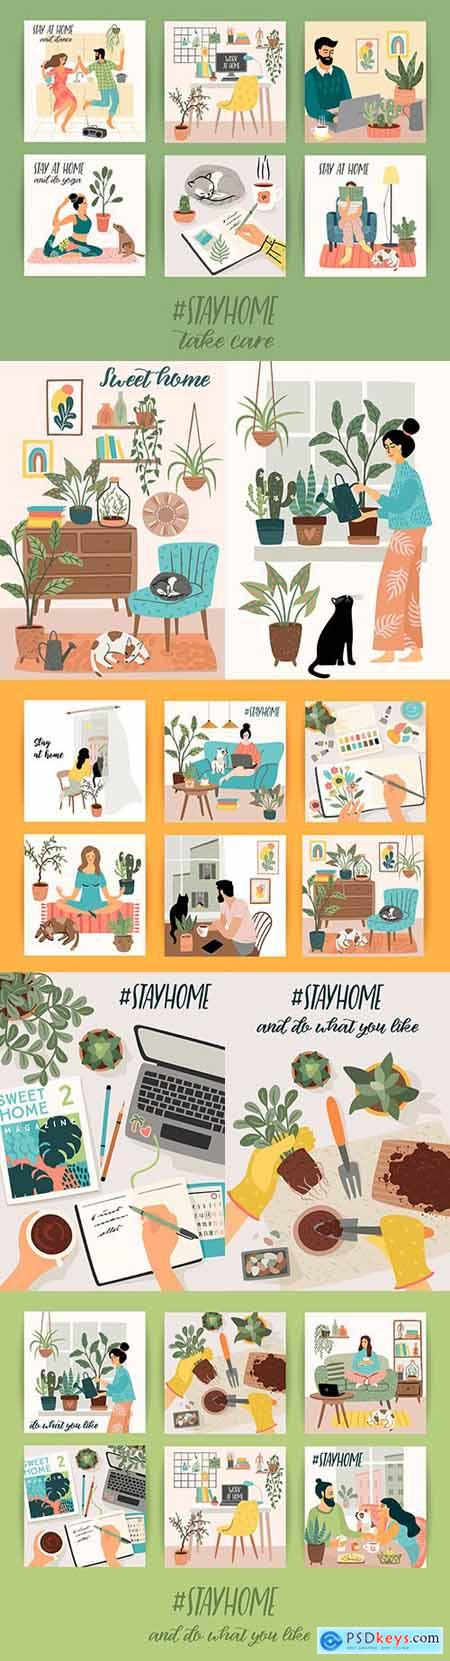 Stay at home, cosy interior room flat design illustrations